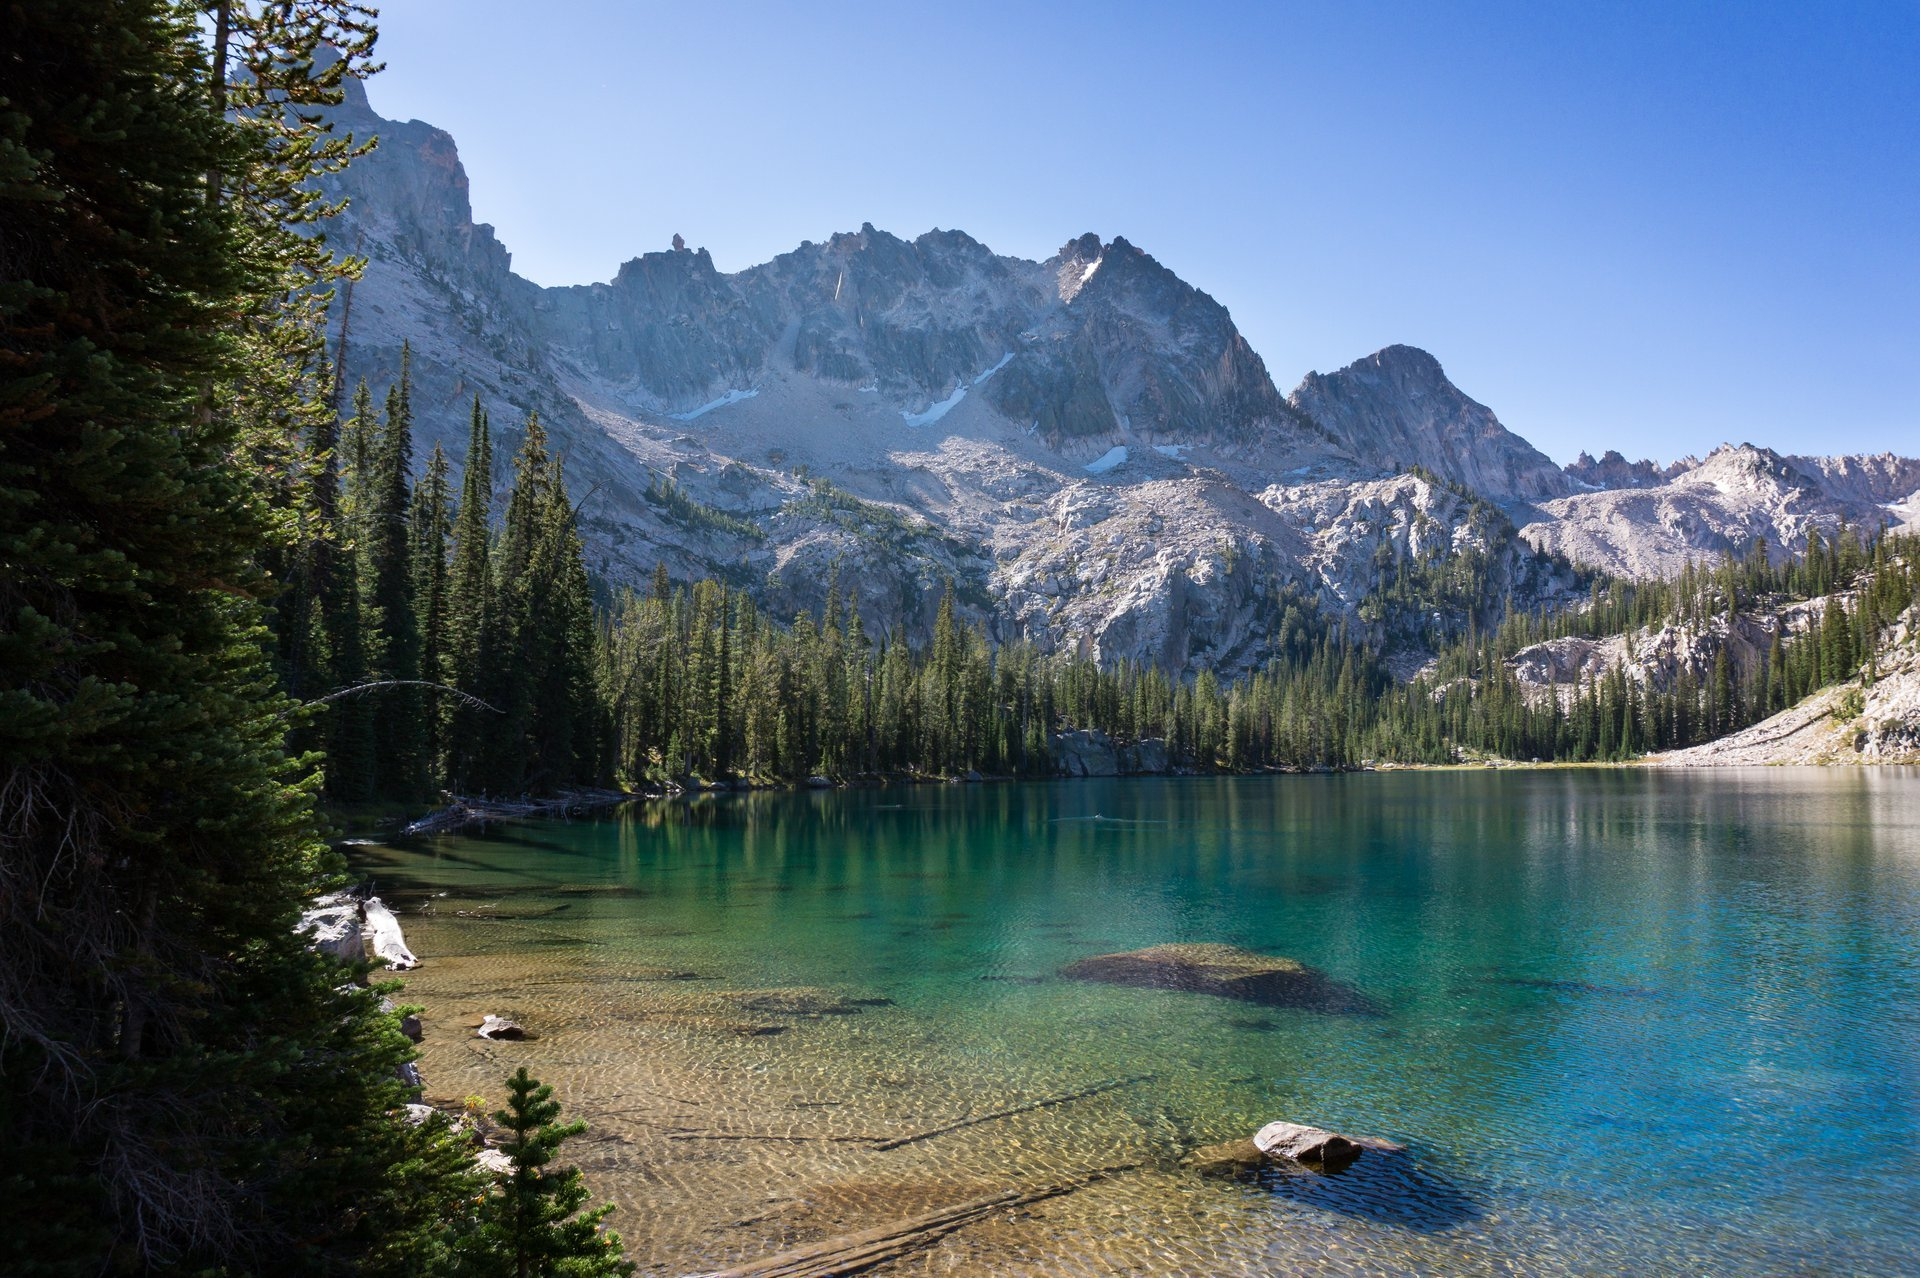 Sawtooth Mountains in Idaho 2020 - Best Time